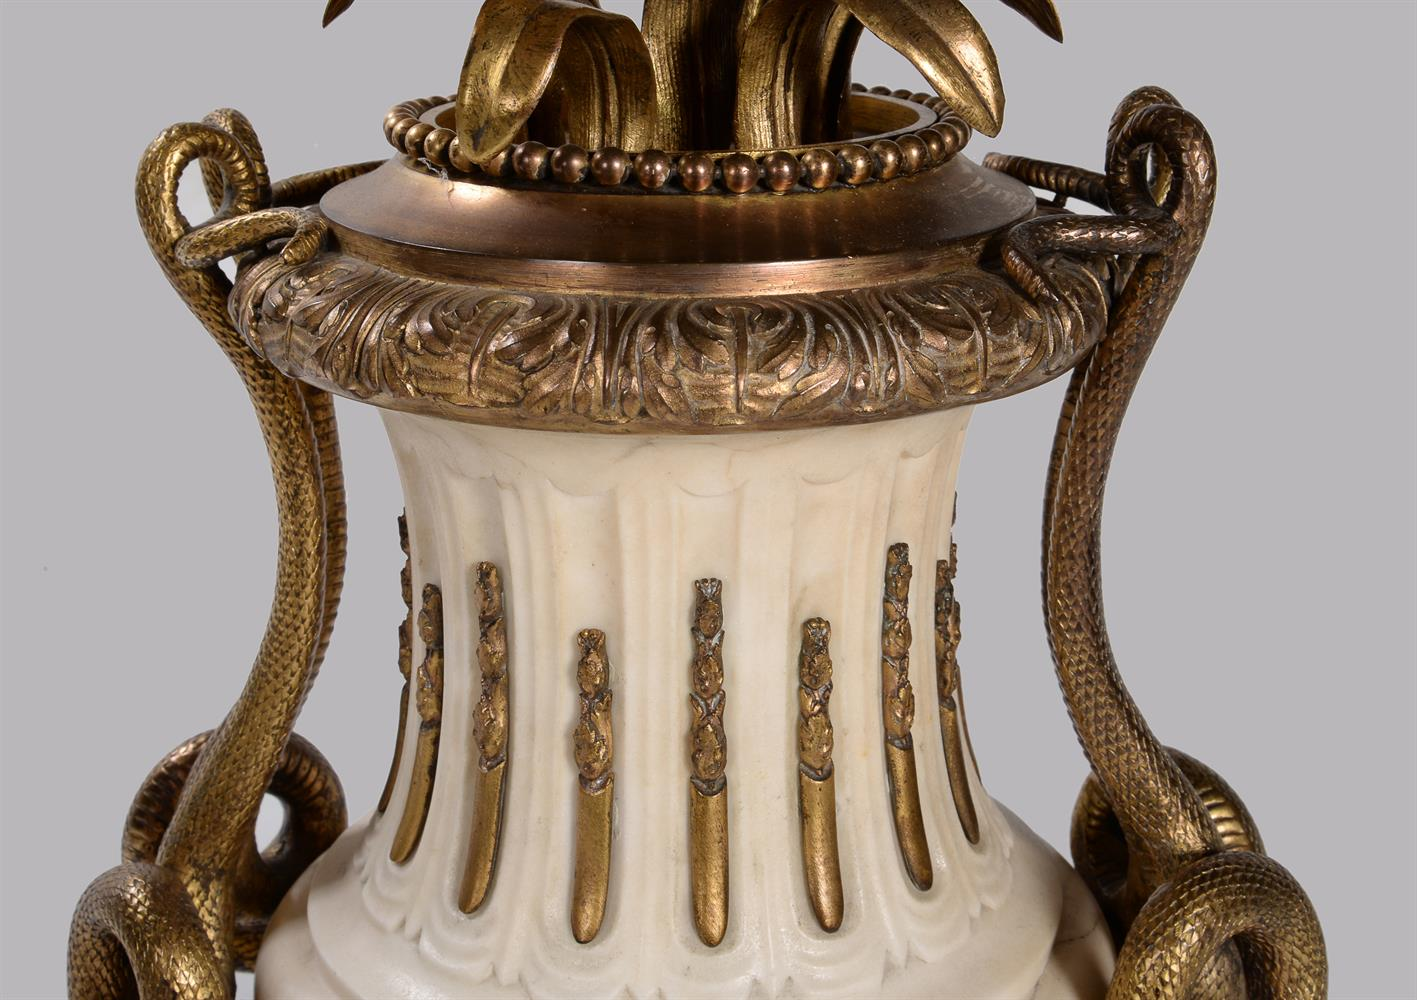 A PAIR OF FRENCH MARBLE AND ORMOLU SEVEN LIGHT CANDELABRA, CIRCA 1860 - Image 6 of 6